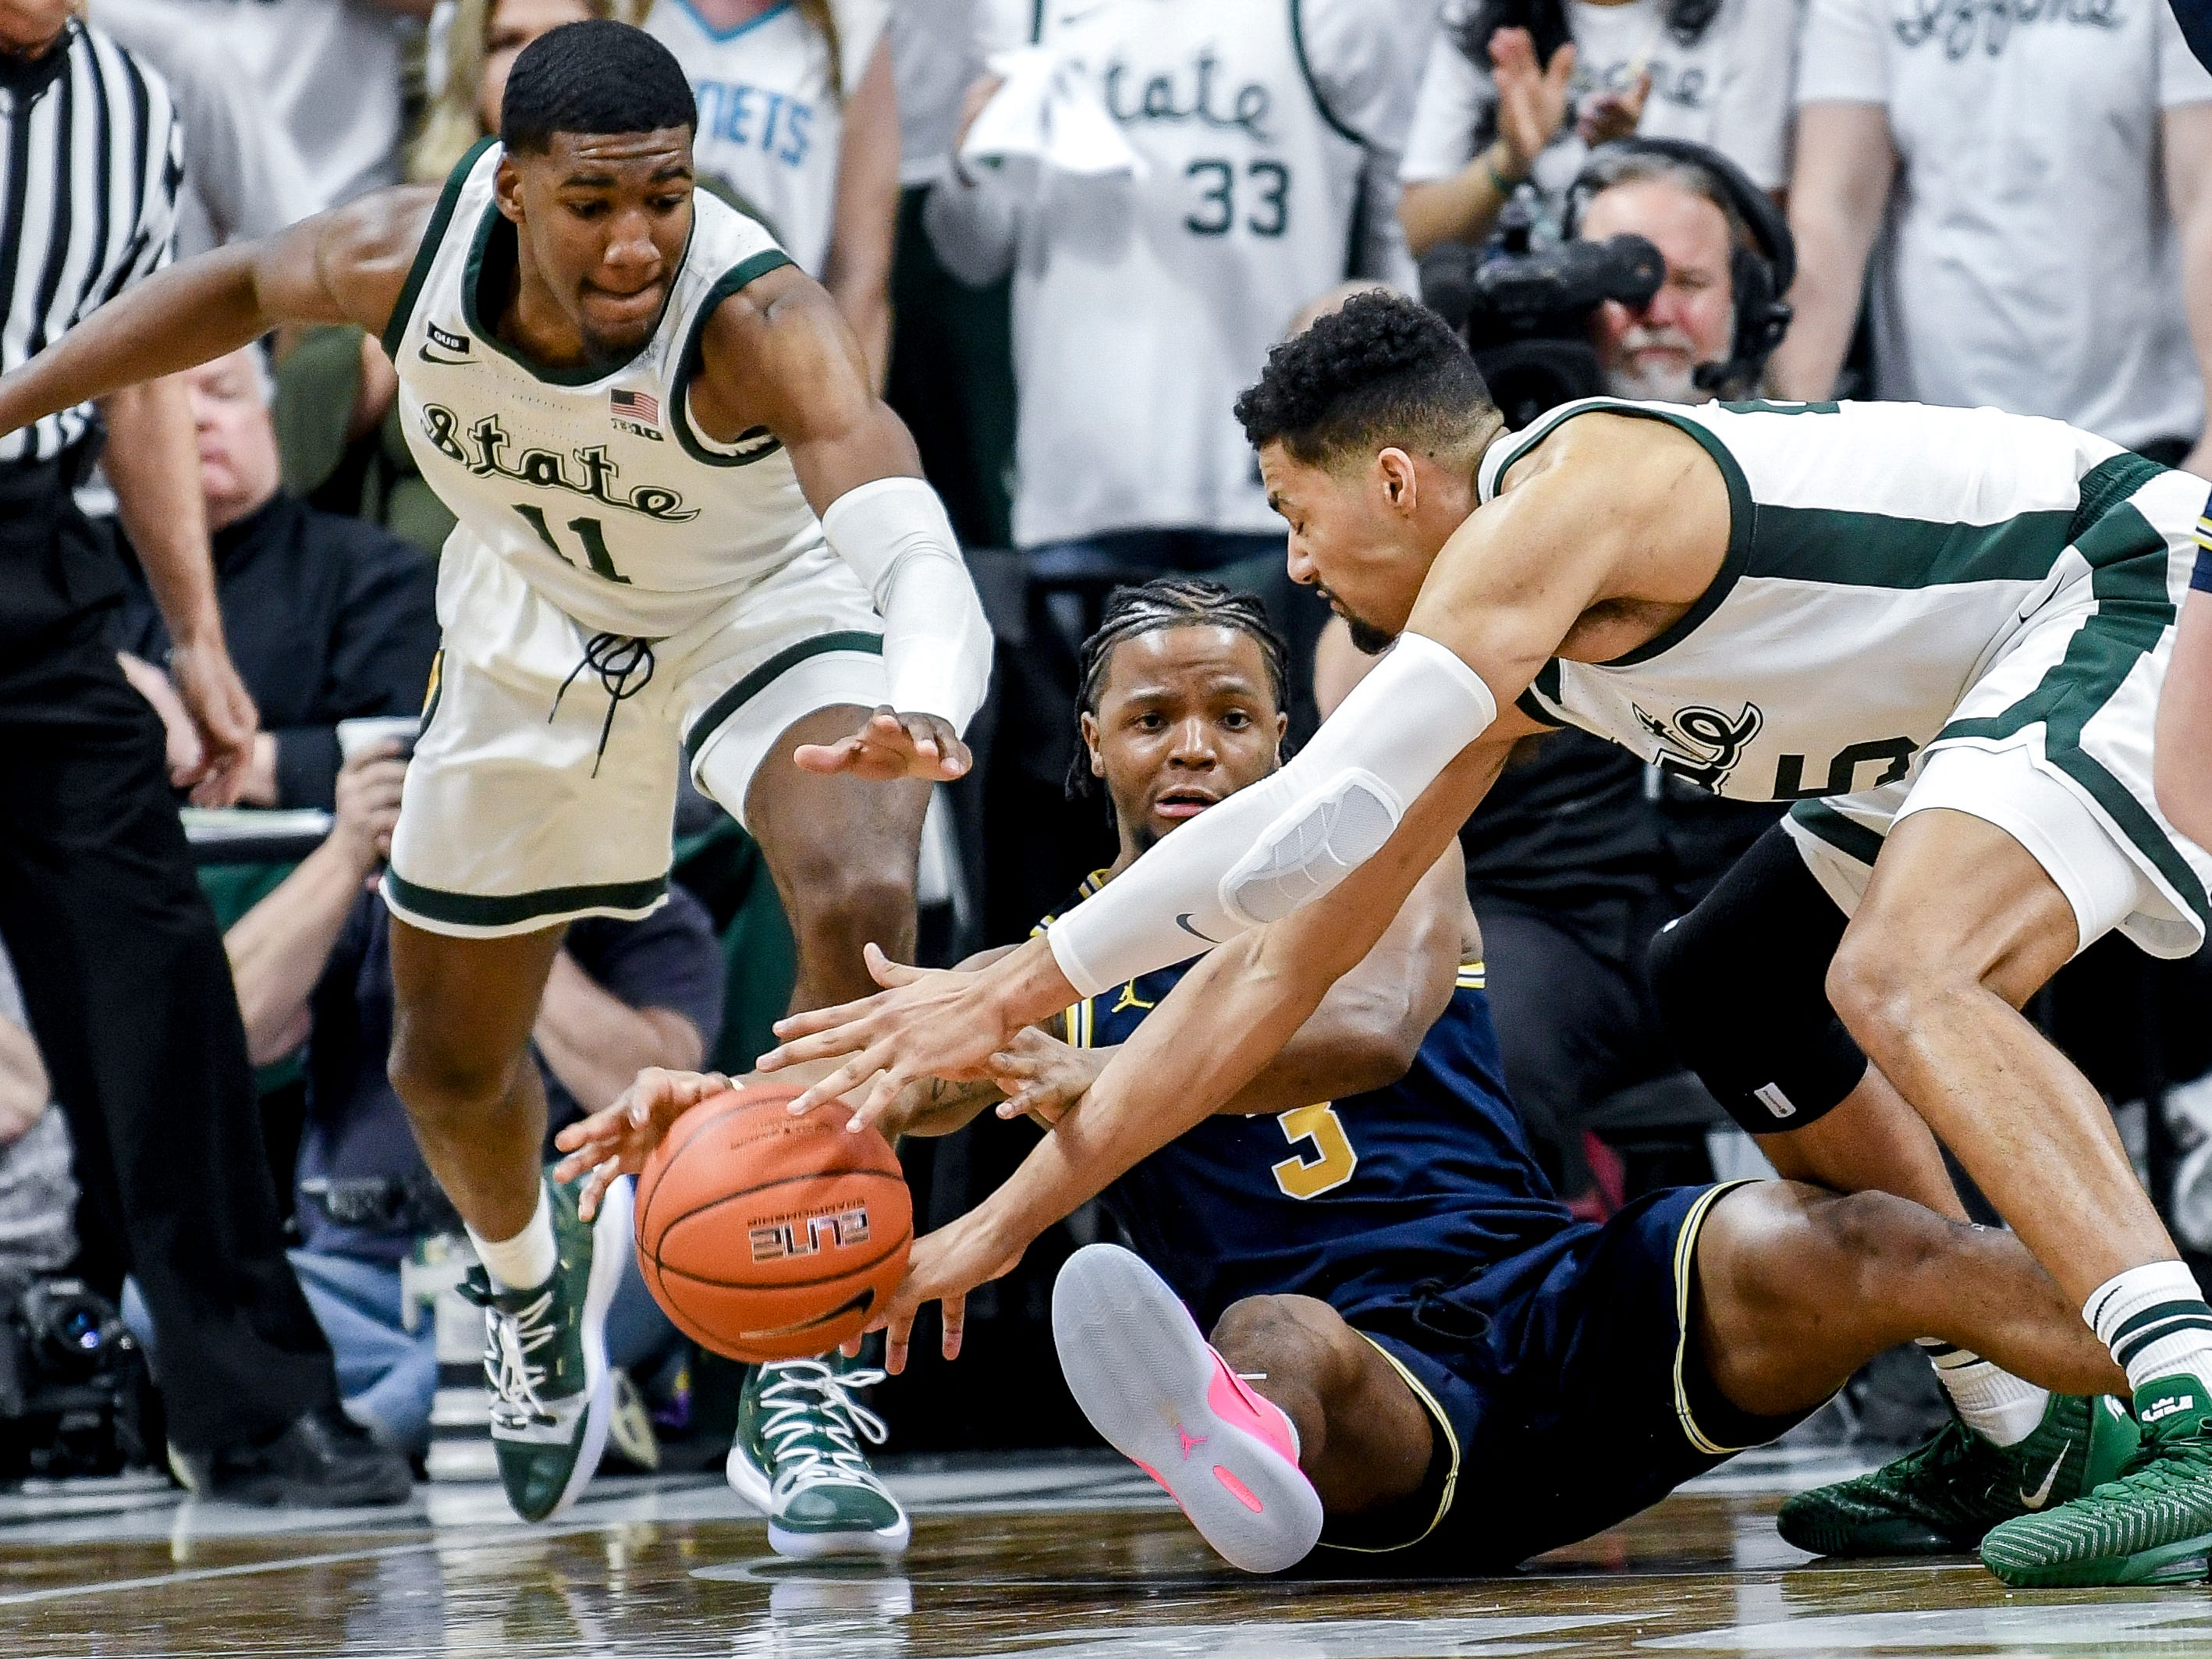 Michigan State's Aaron Henry, left, and Kenny Goins, right, go after the ball after Michigan's Zavier Simpson fell to the floor during the first half on Saturday, March 9, 2019, at the Breslin Center in East Lansing.